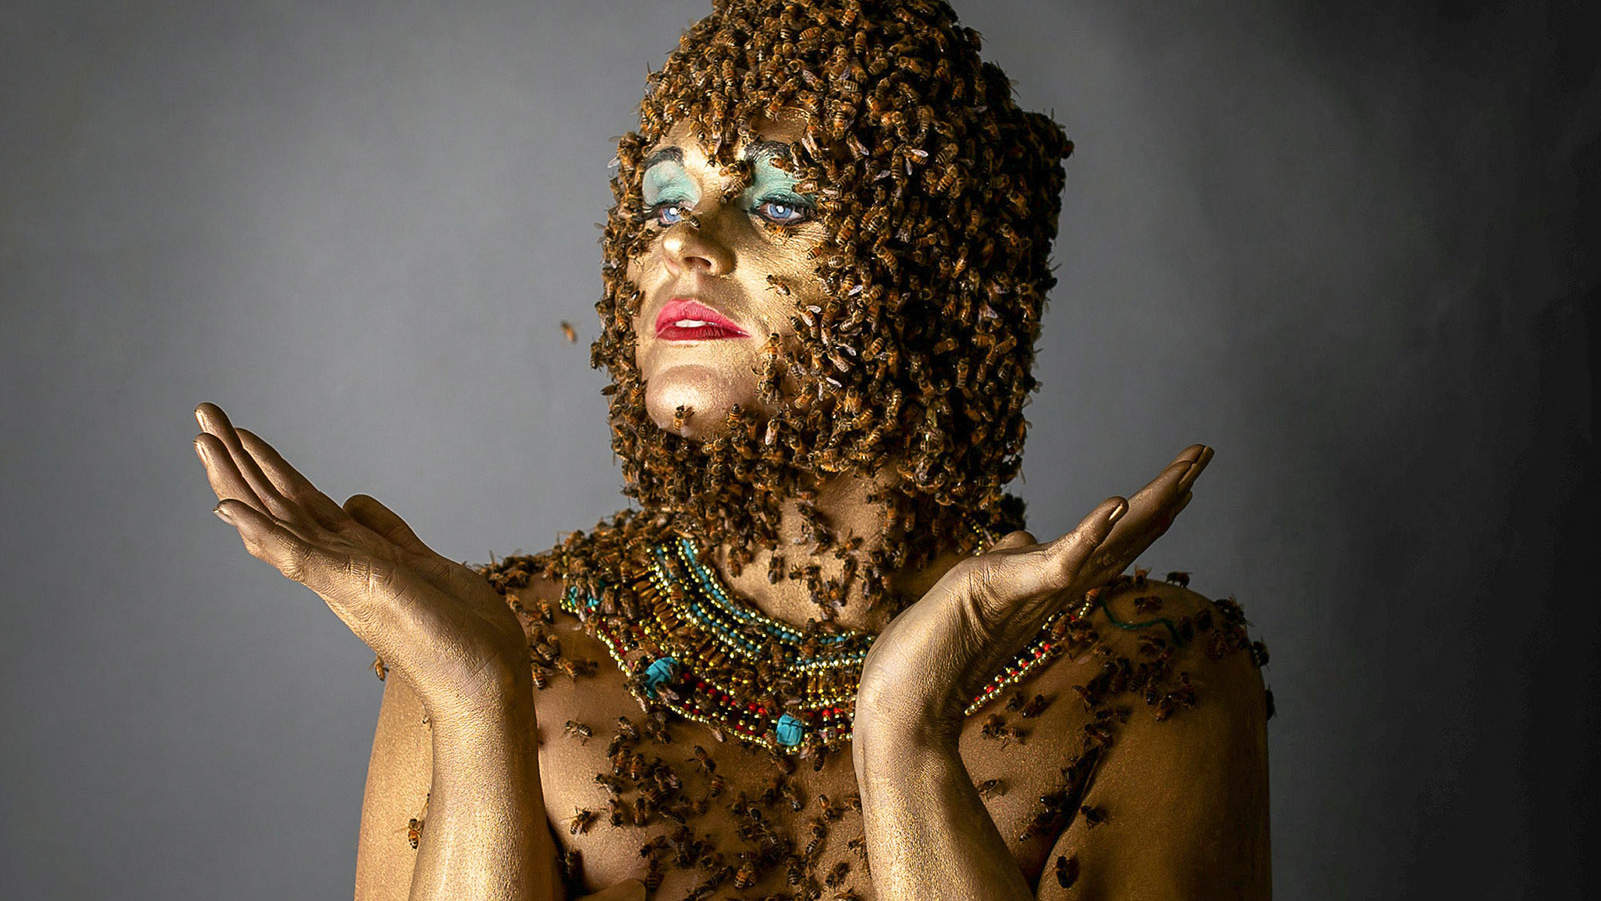 Mom Who Posed with 20,000 Bees on Her Belly Is Back with Another Maternity Shoot After Stillbirth